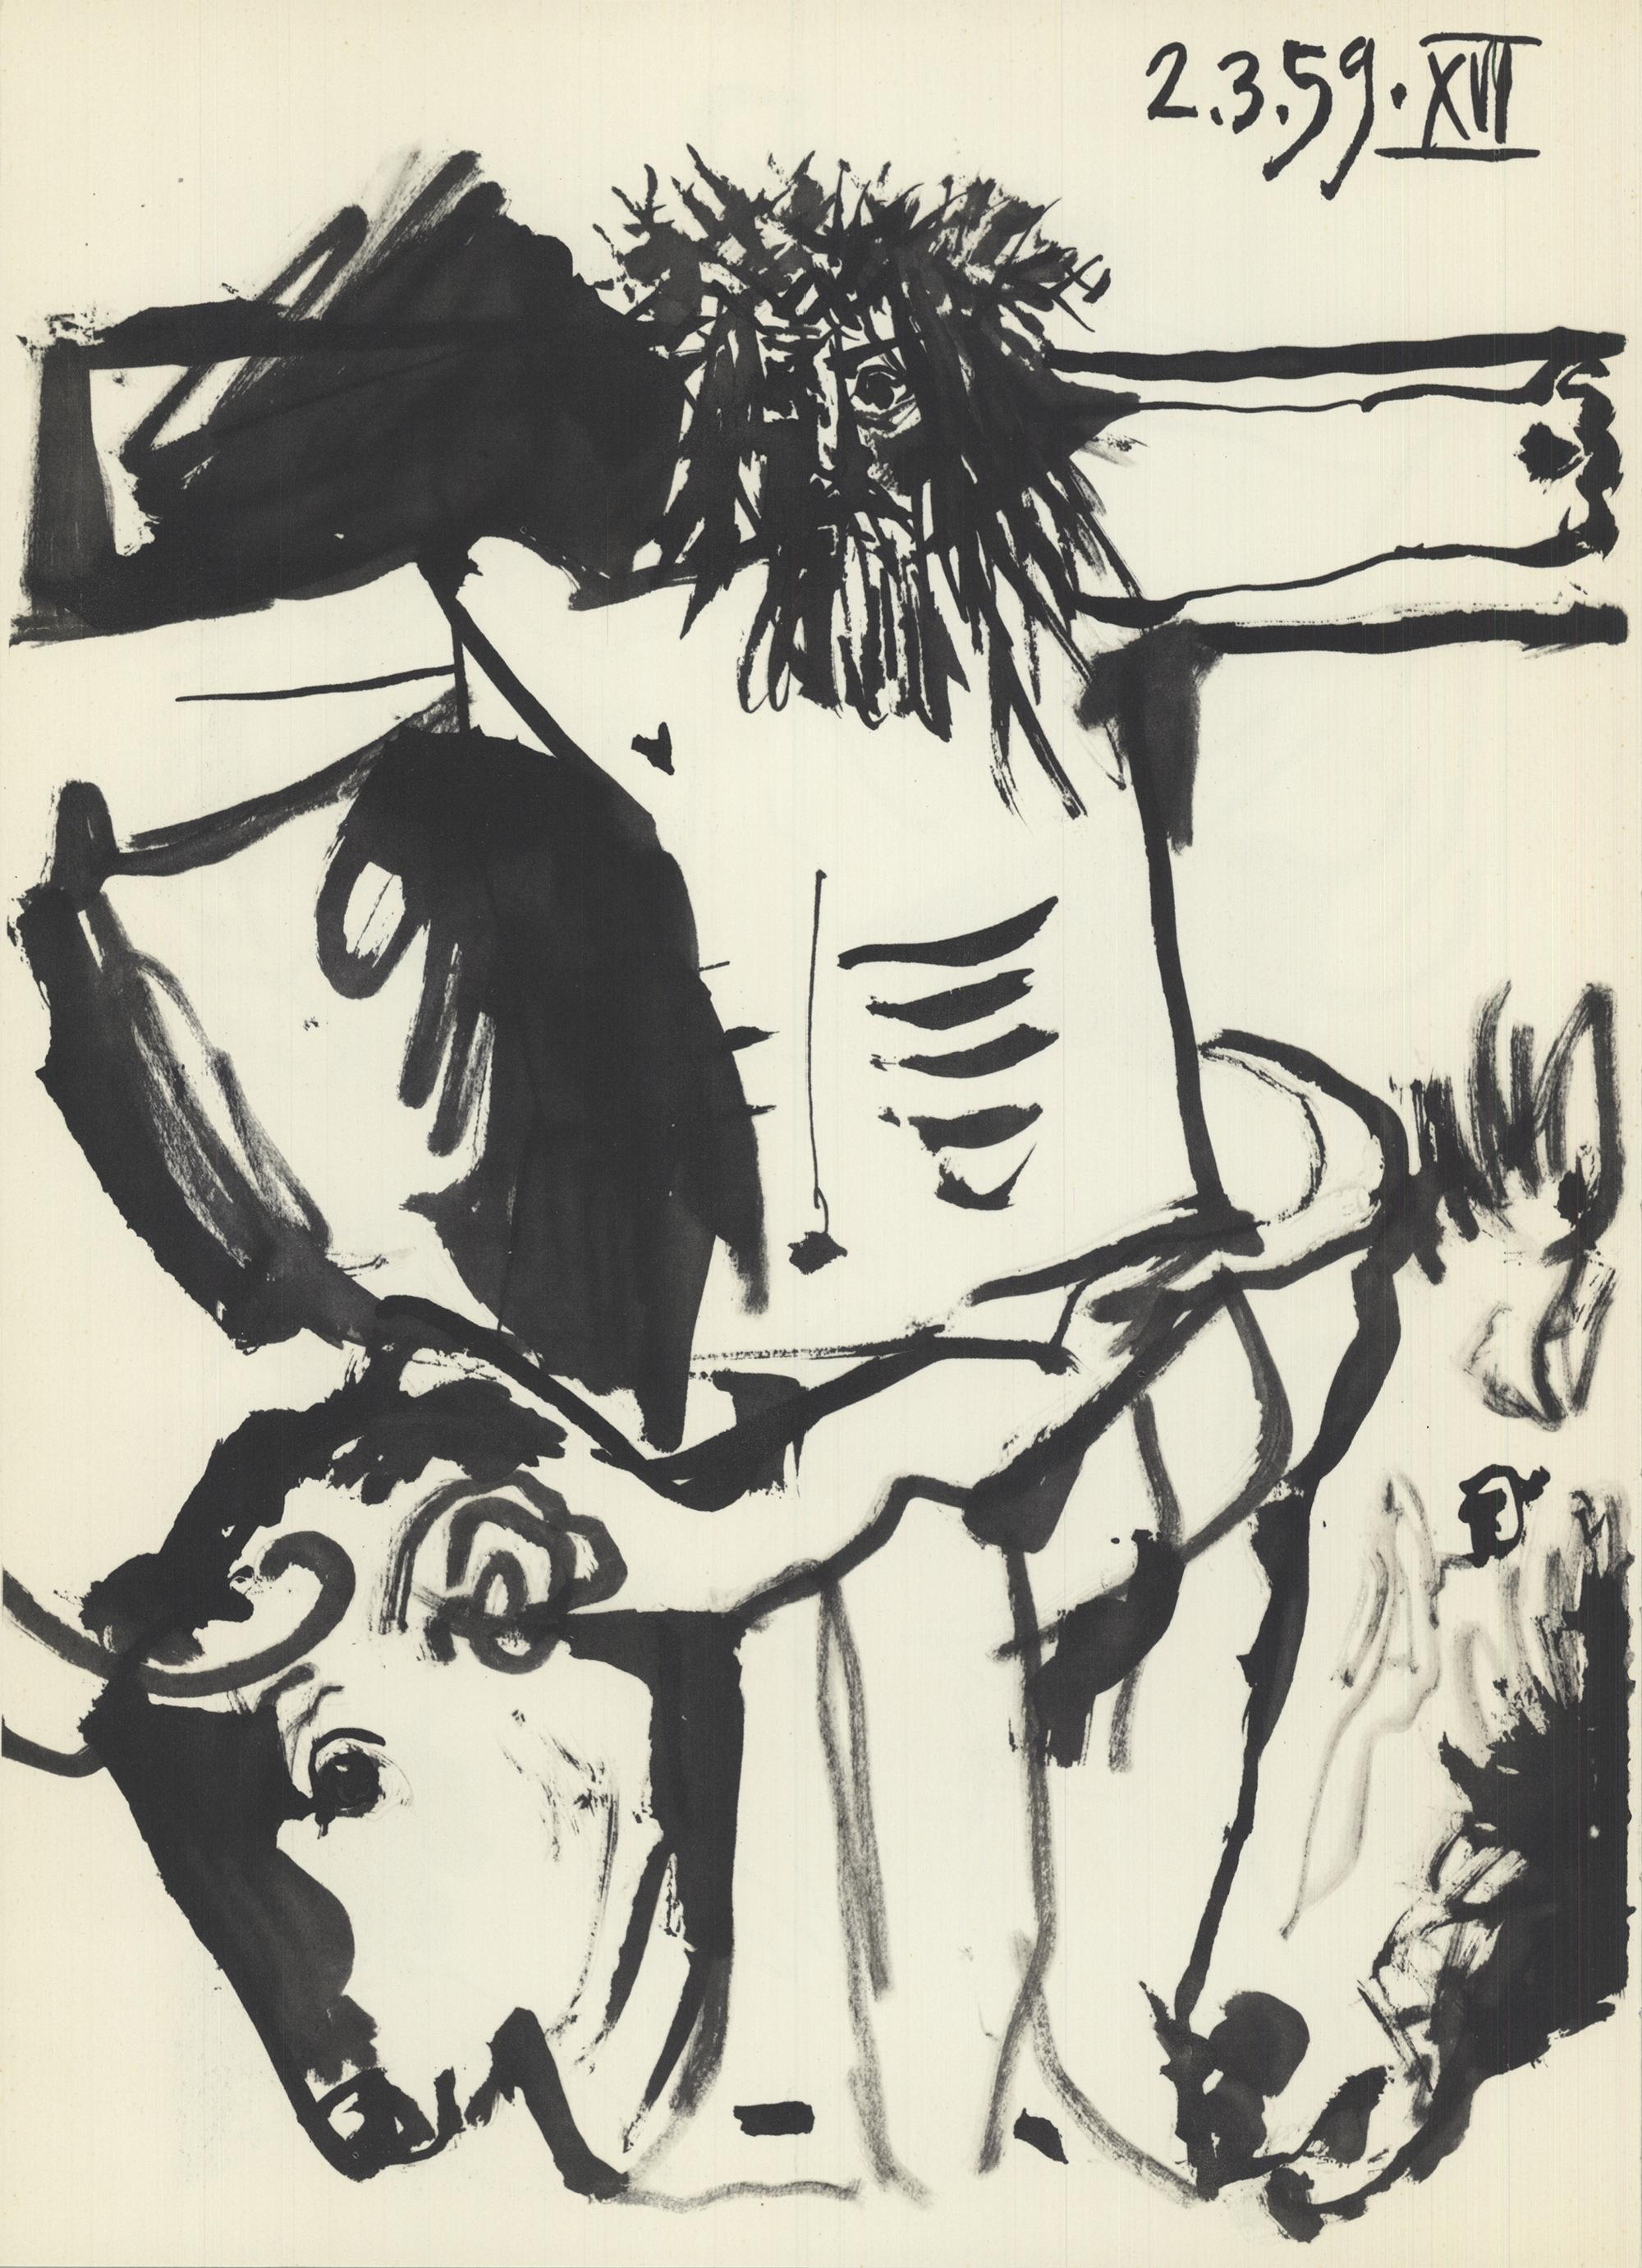 1959 Pablo Picasso 'Jesus on the Cross' Lithograph